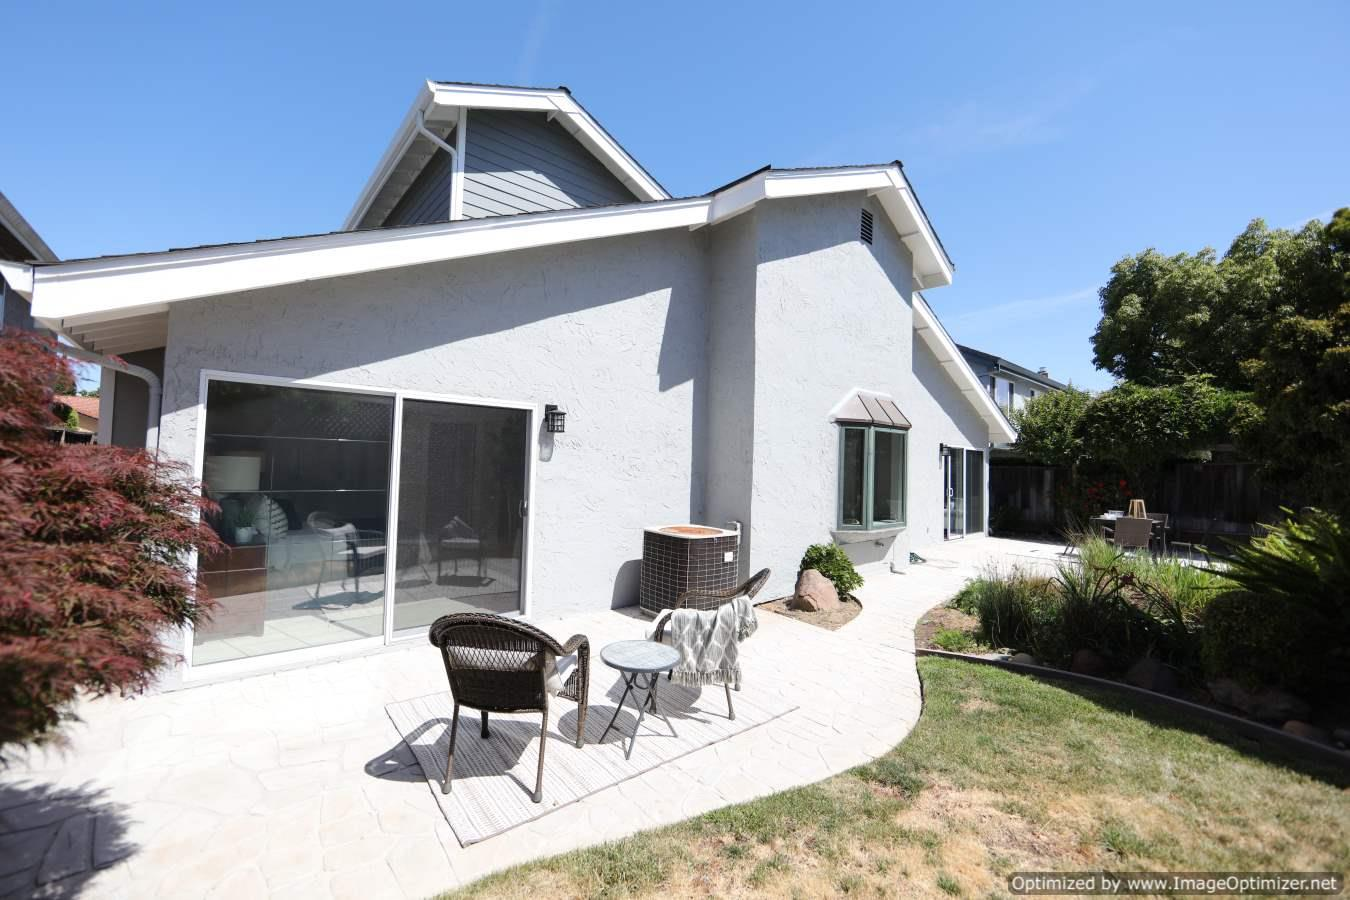 Additional photo for property listing at 4113 Ashbrook Circle  San Jose, California 95124 United States